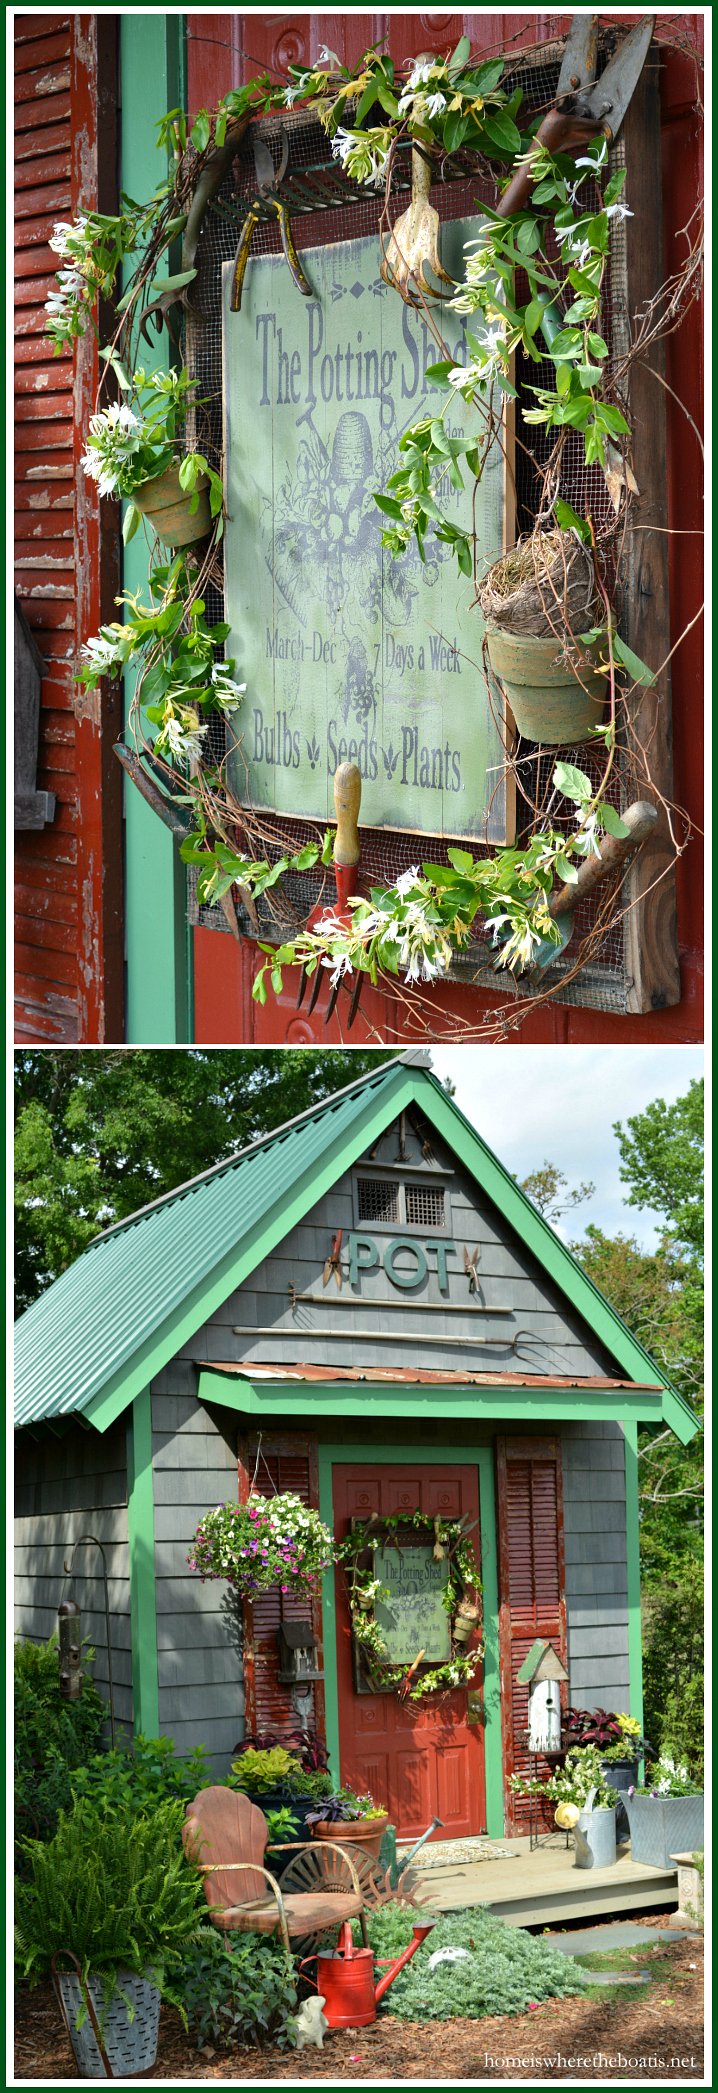 Potting Shed sign with wood frame with vintage garden tools and honeysuckle vine | ©homeiswheretheboatis.net #shed #sign #garden #DIY